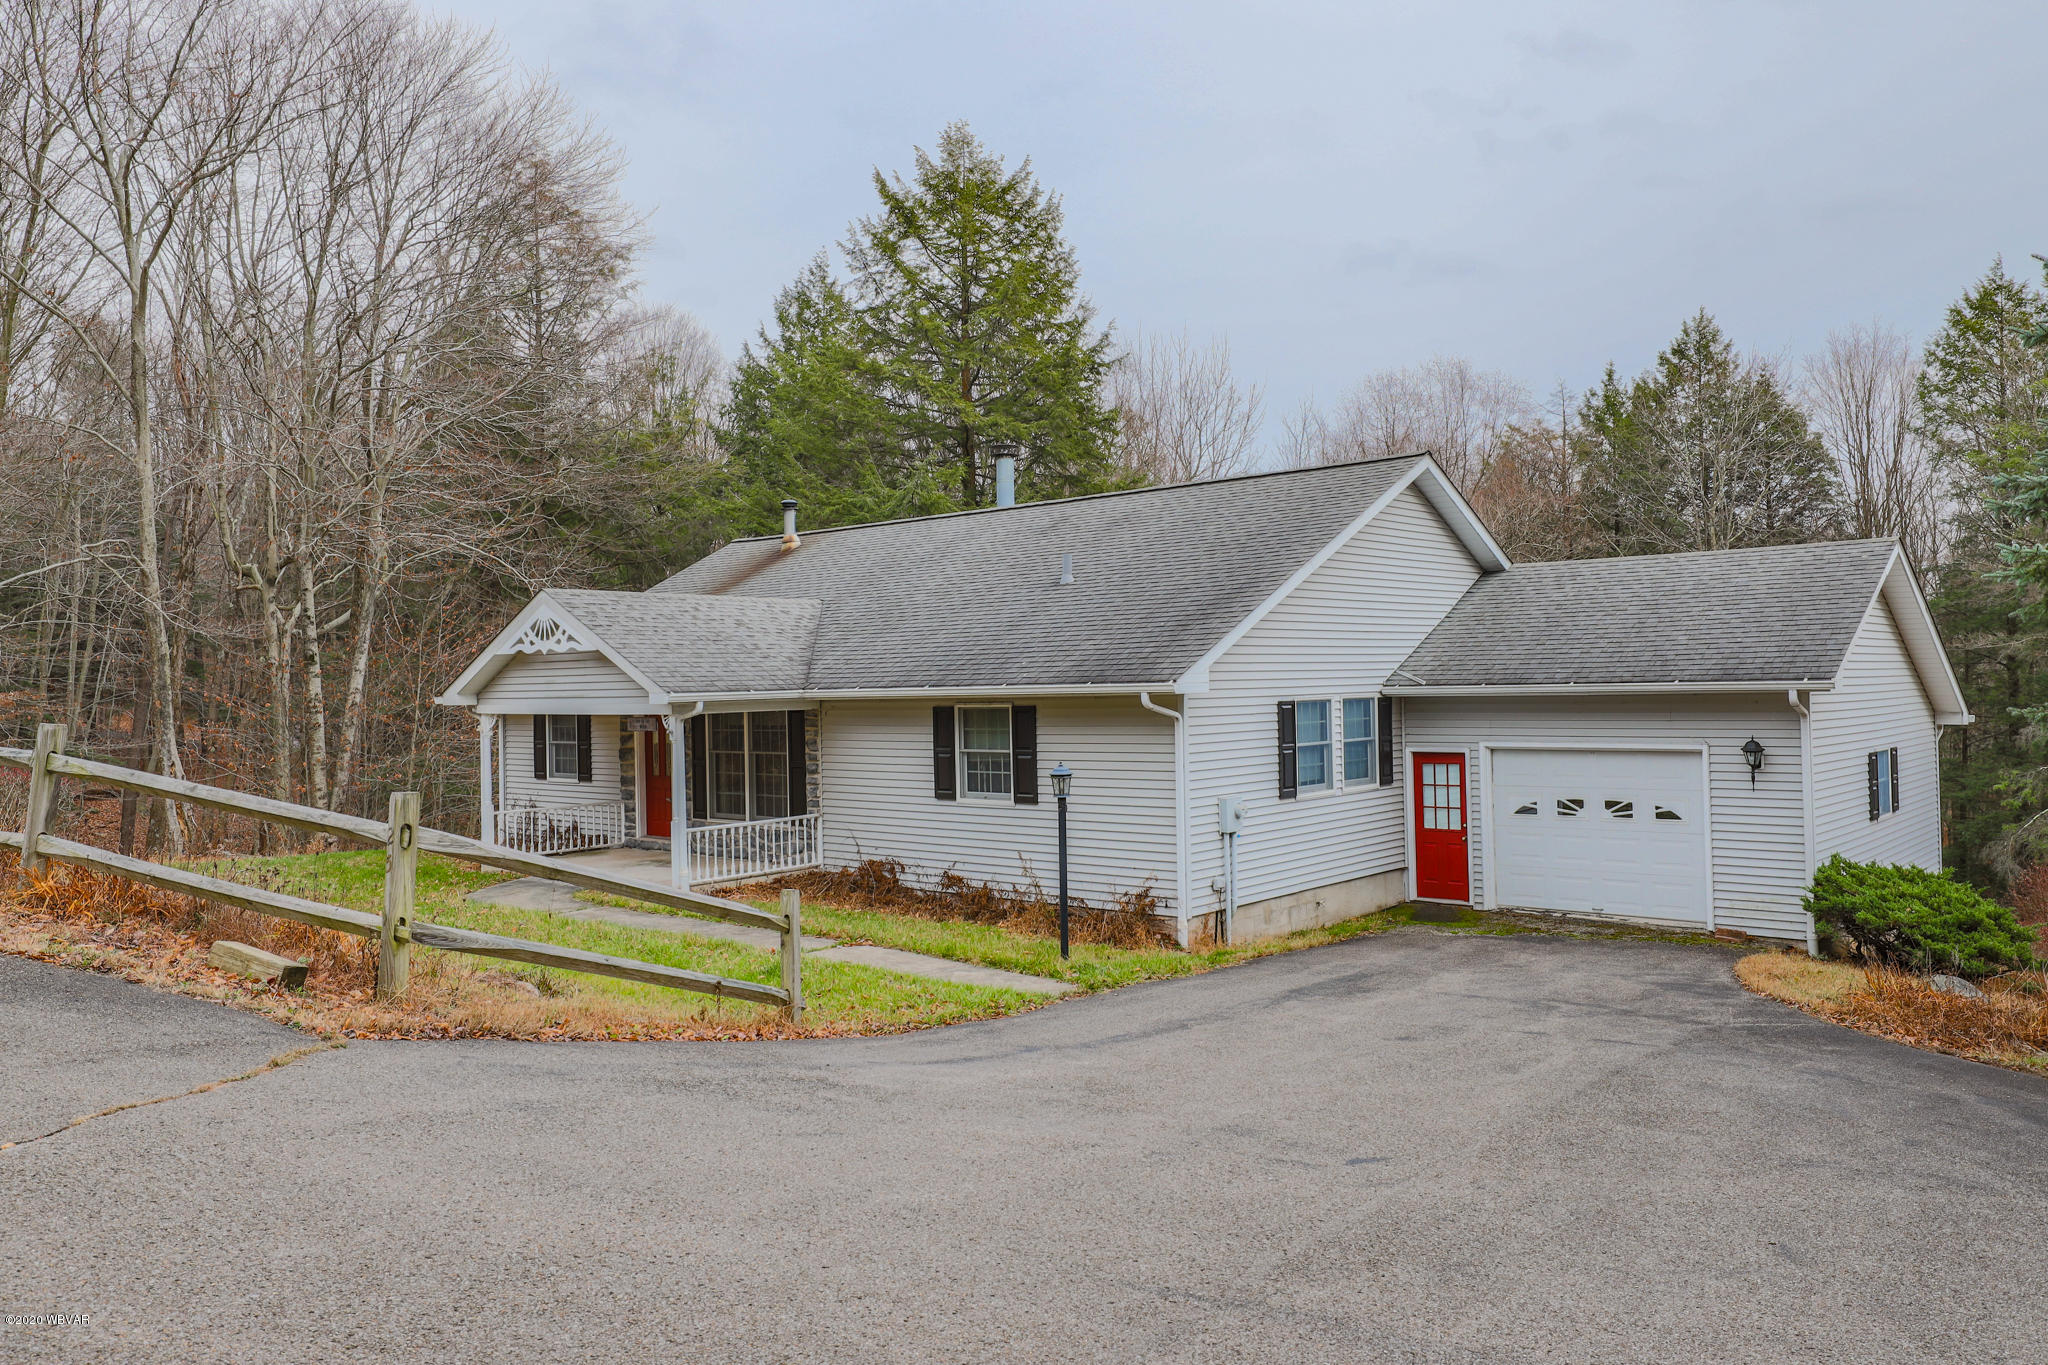 25 RIDER LANE, Eagles Mere, PA 17731, 4 Bedrooms Bedrooms, ,2 BathroomsBathrooms,Residential,For sale,RIDER,WB-91563